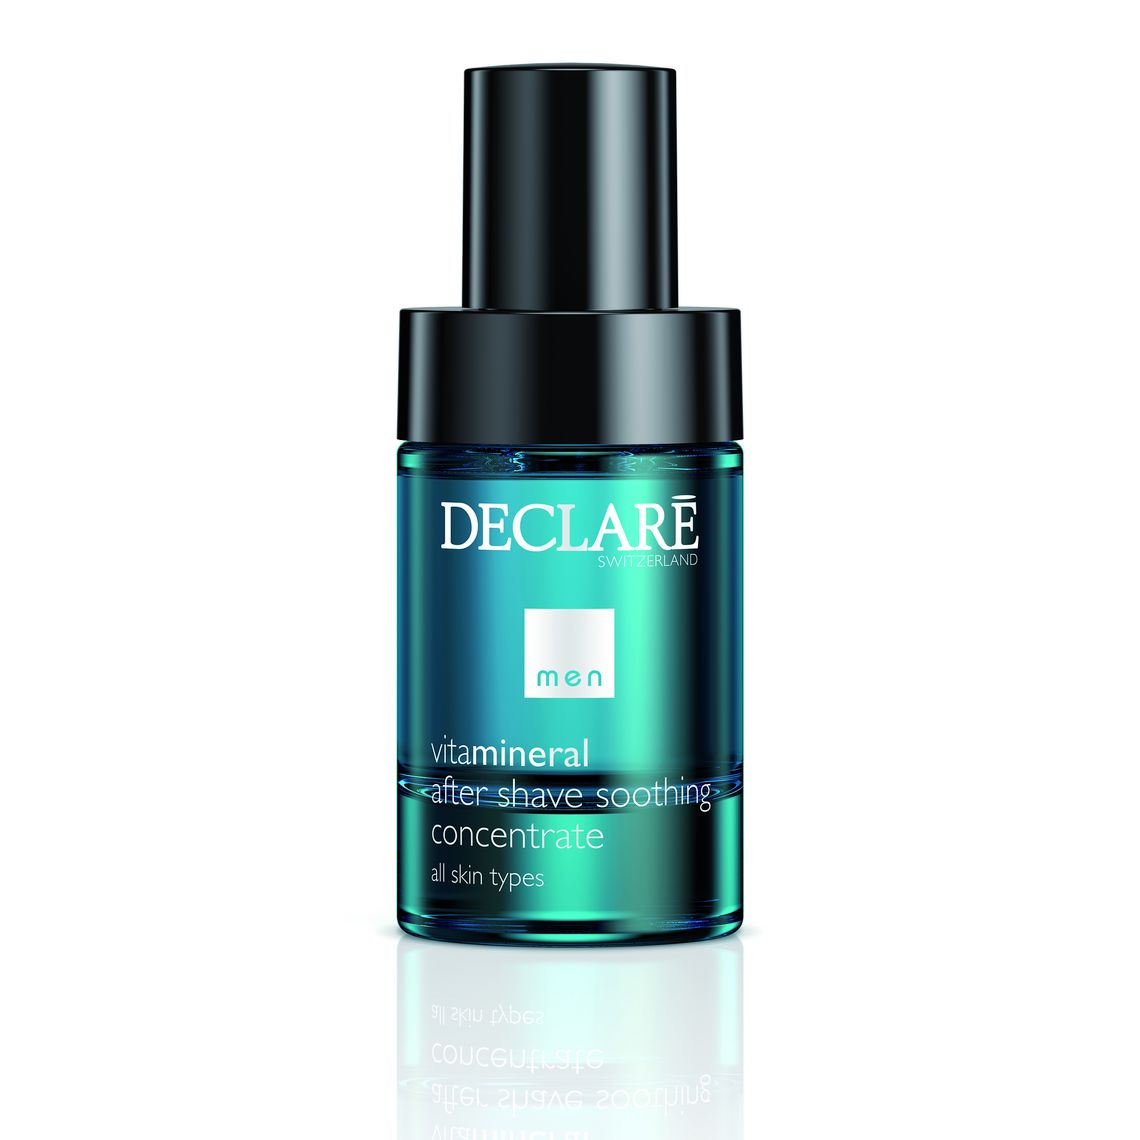 Vitamineral for Men After Shave Soothing Concentrate:Declaré